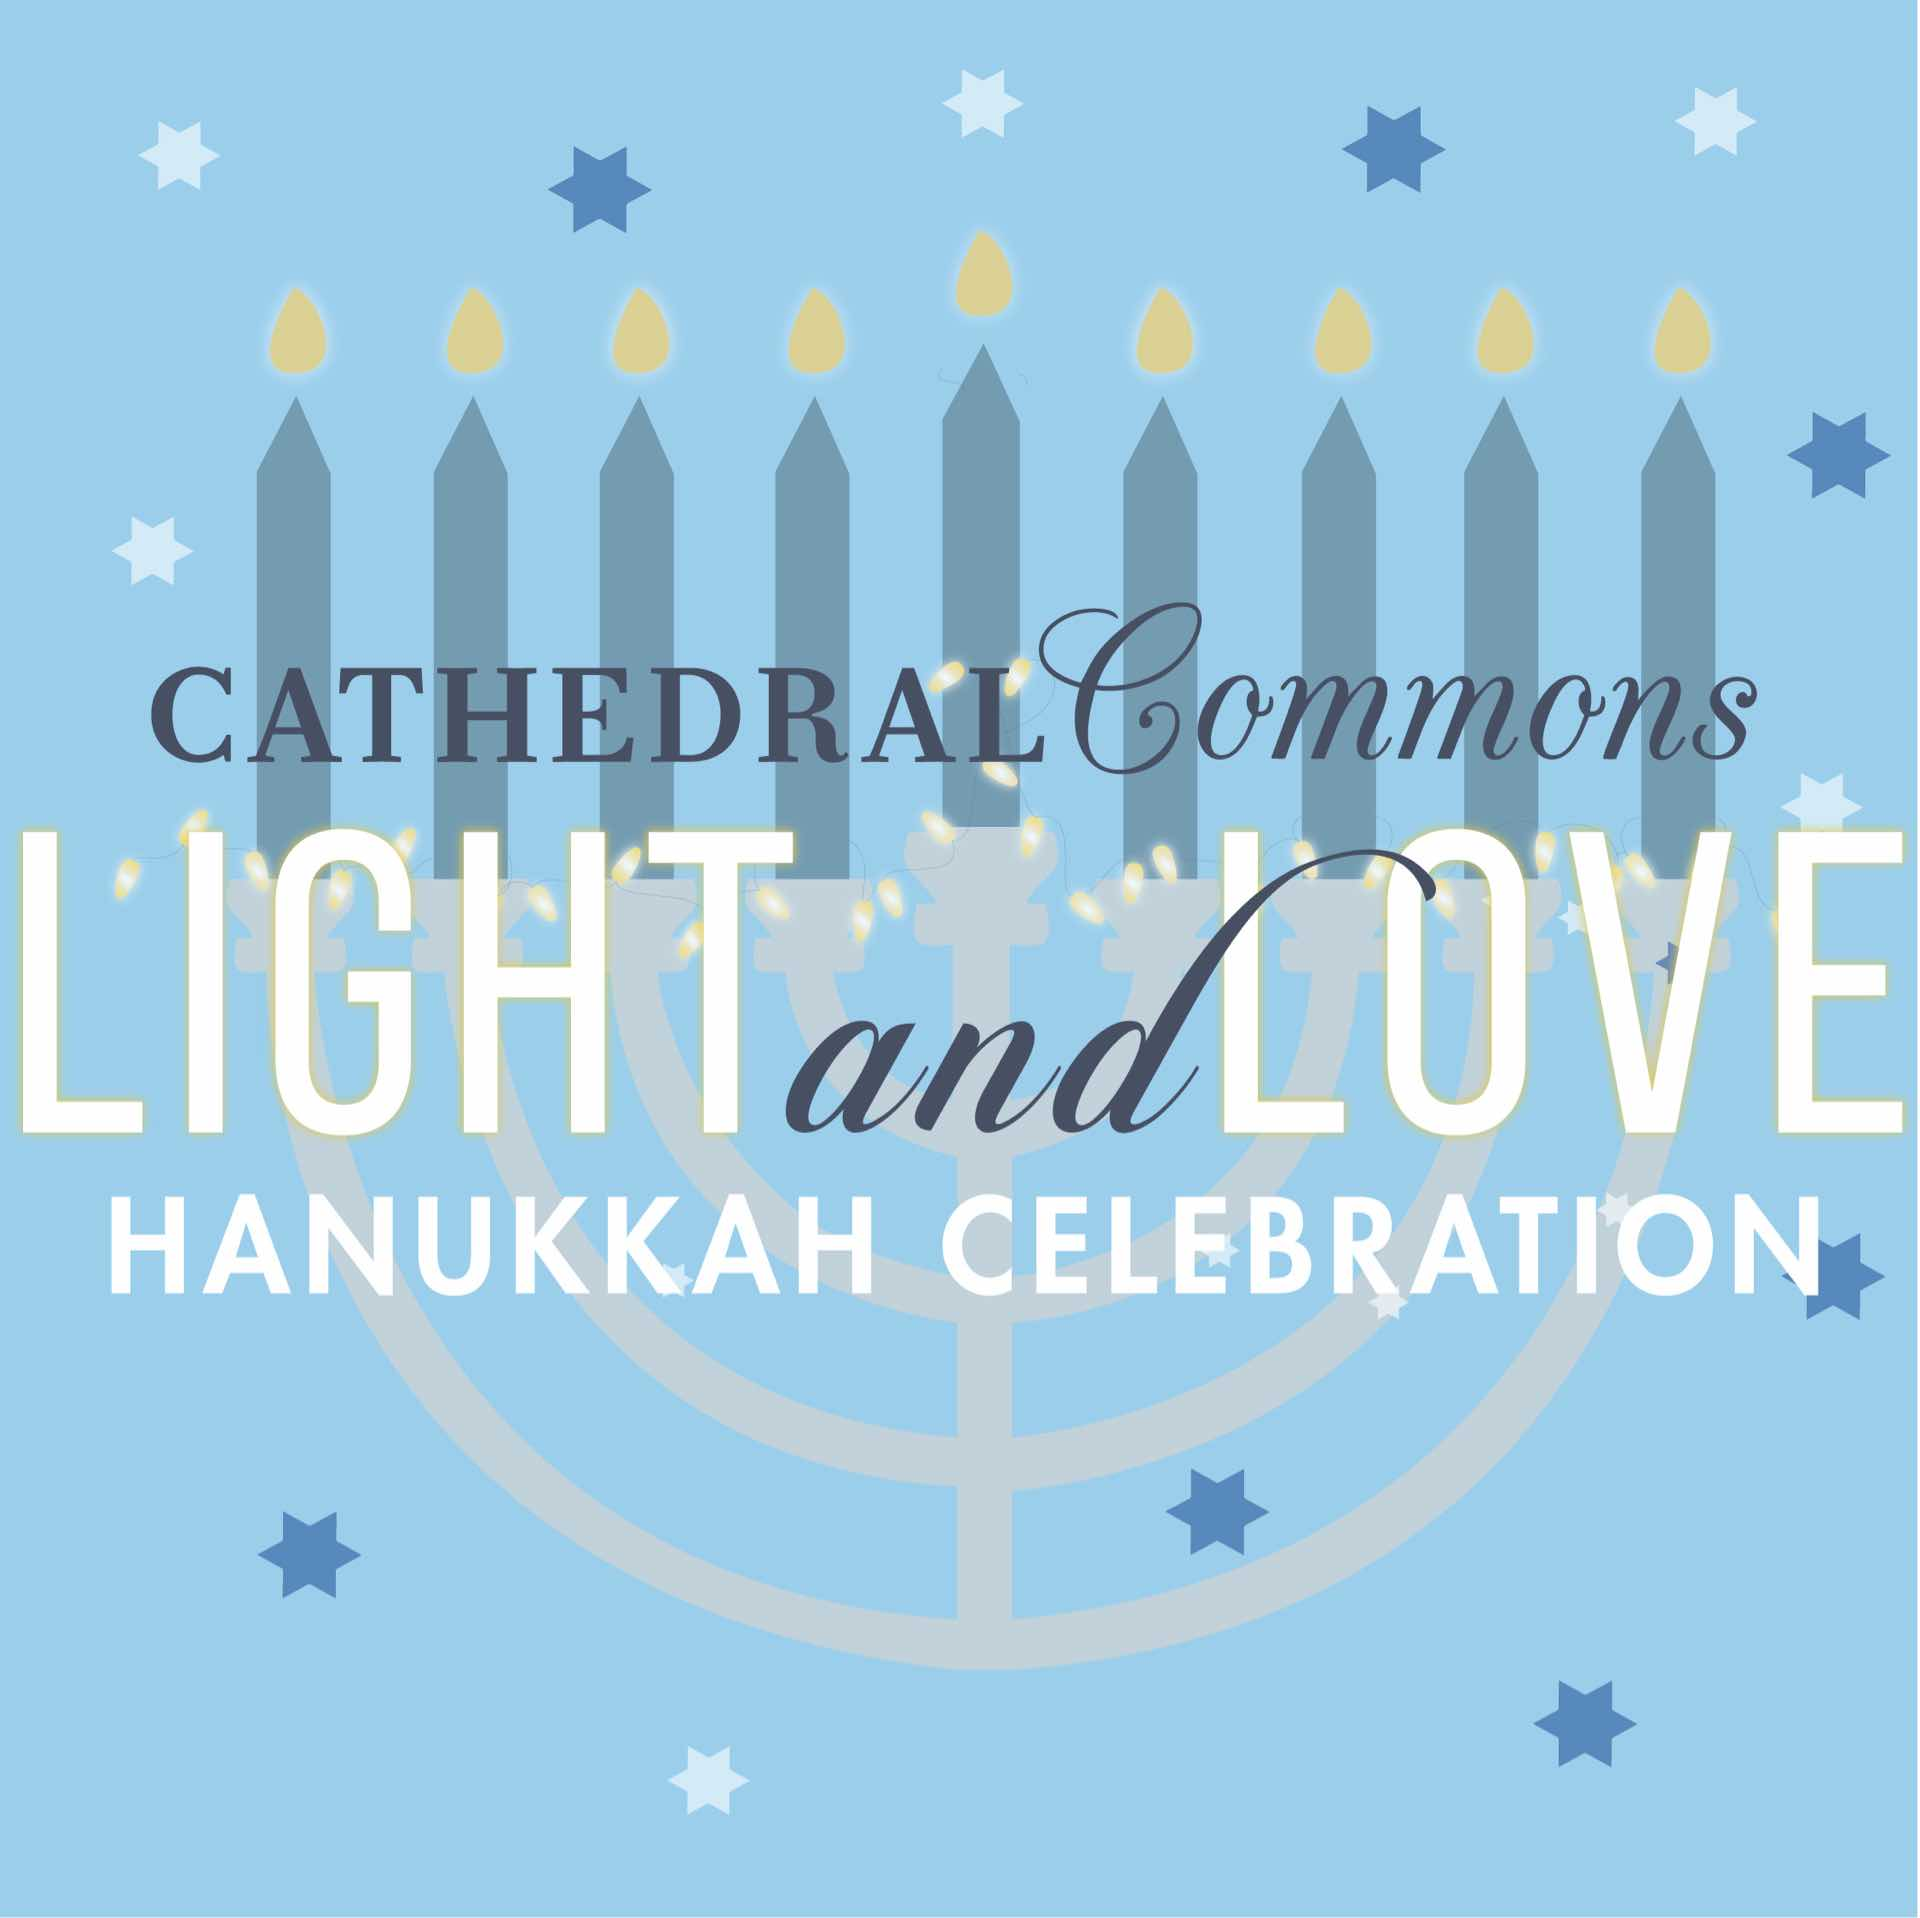 Light and Love Hanukkah Celebration!